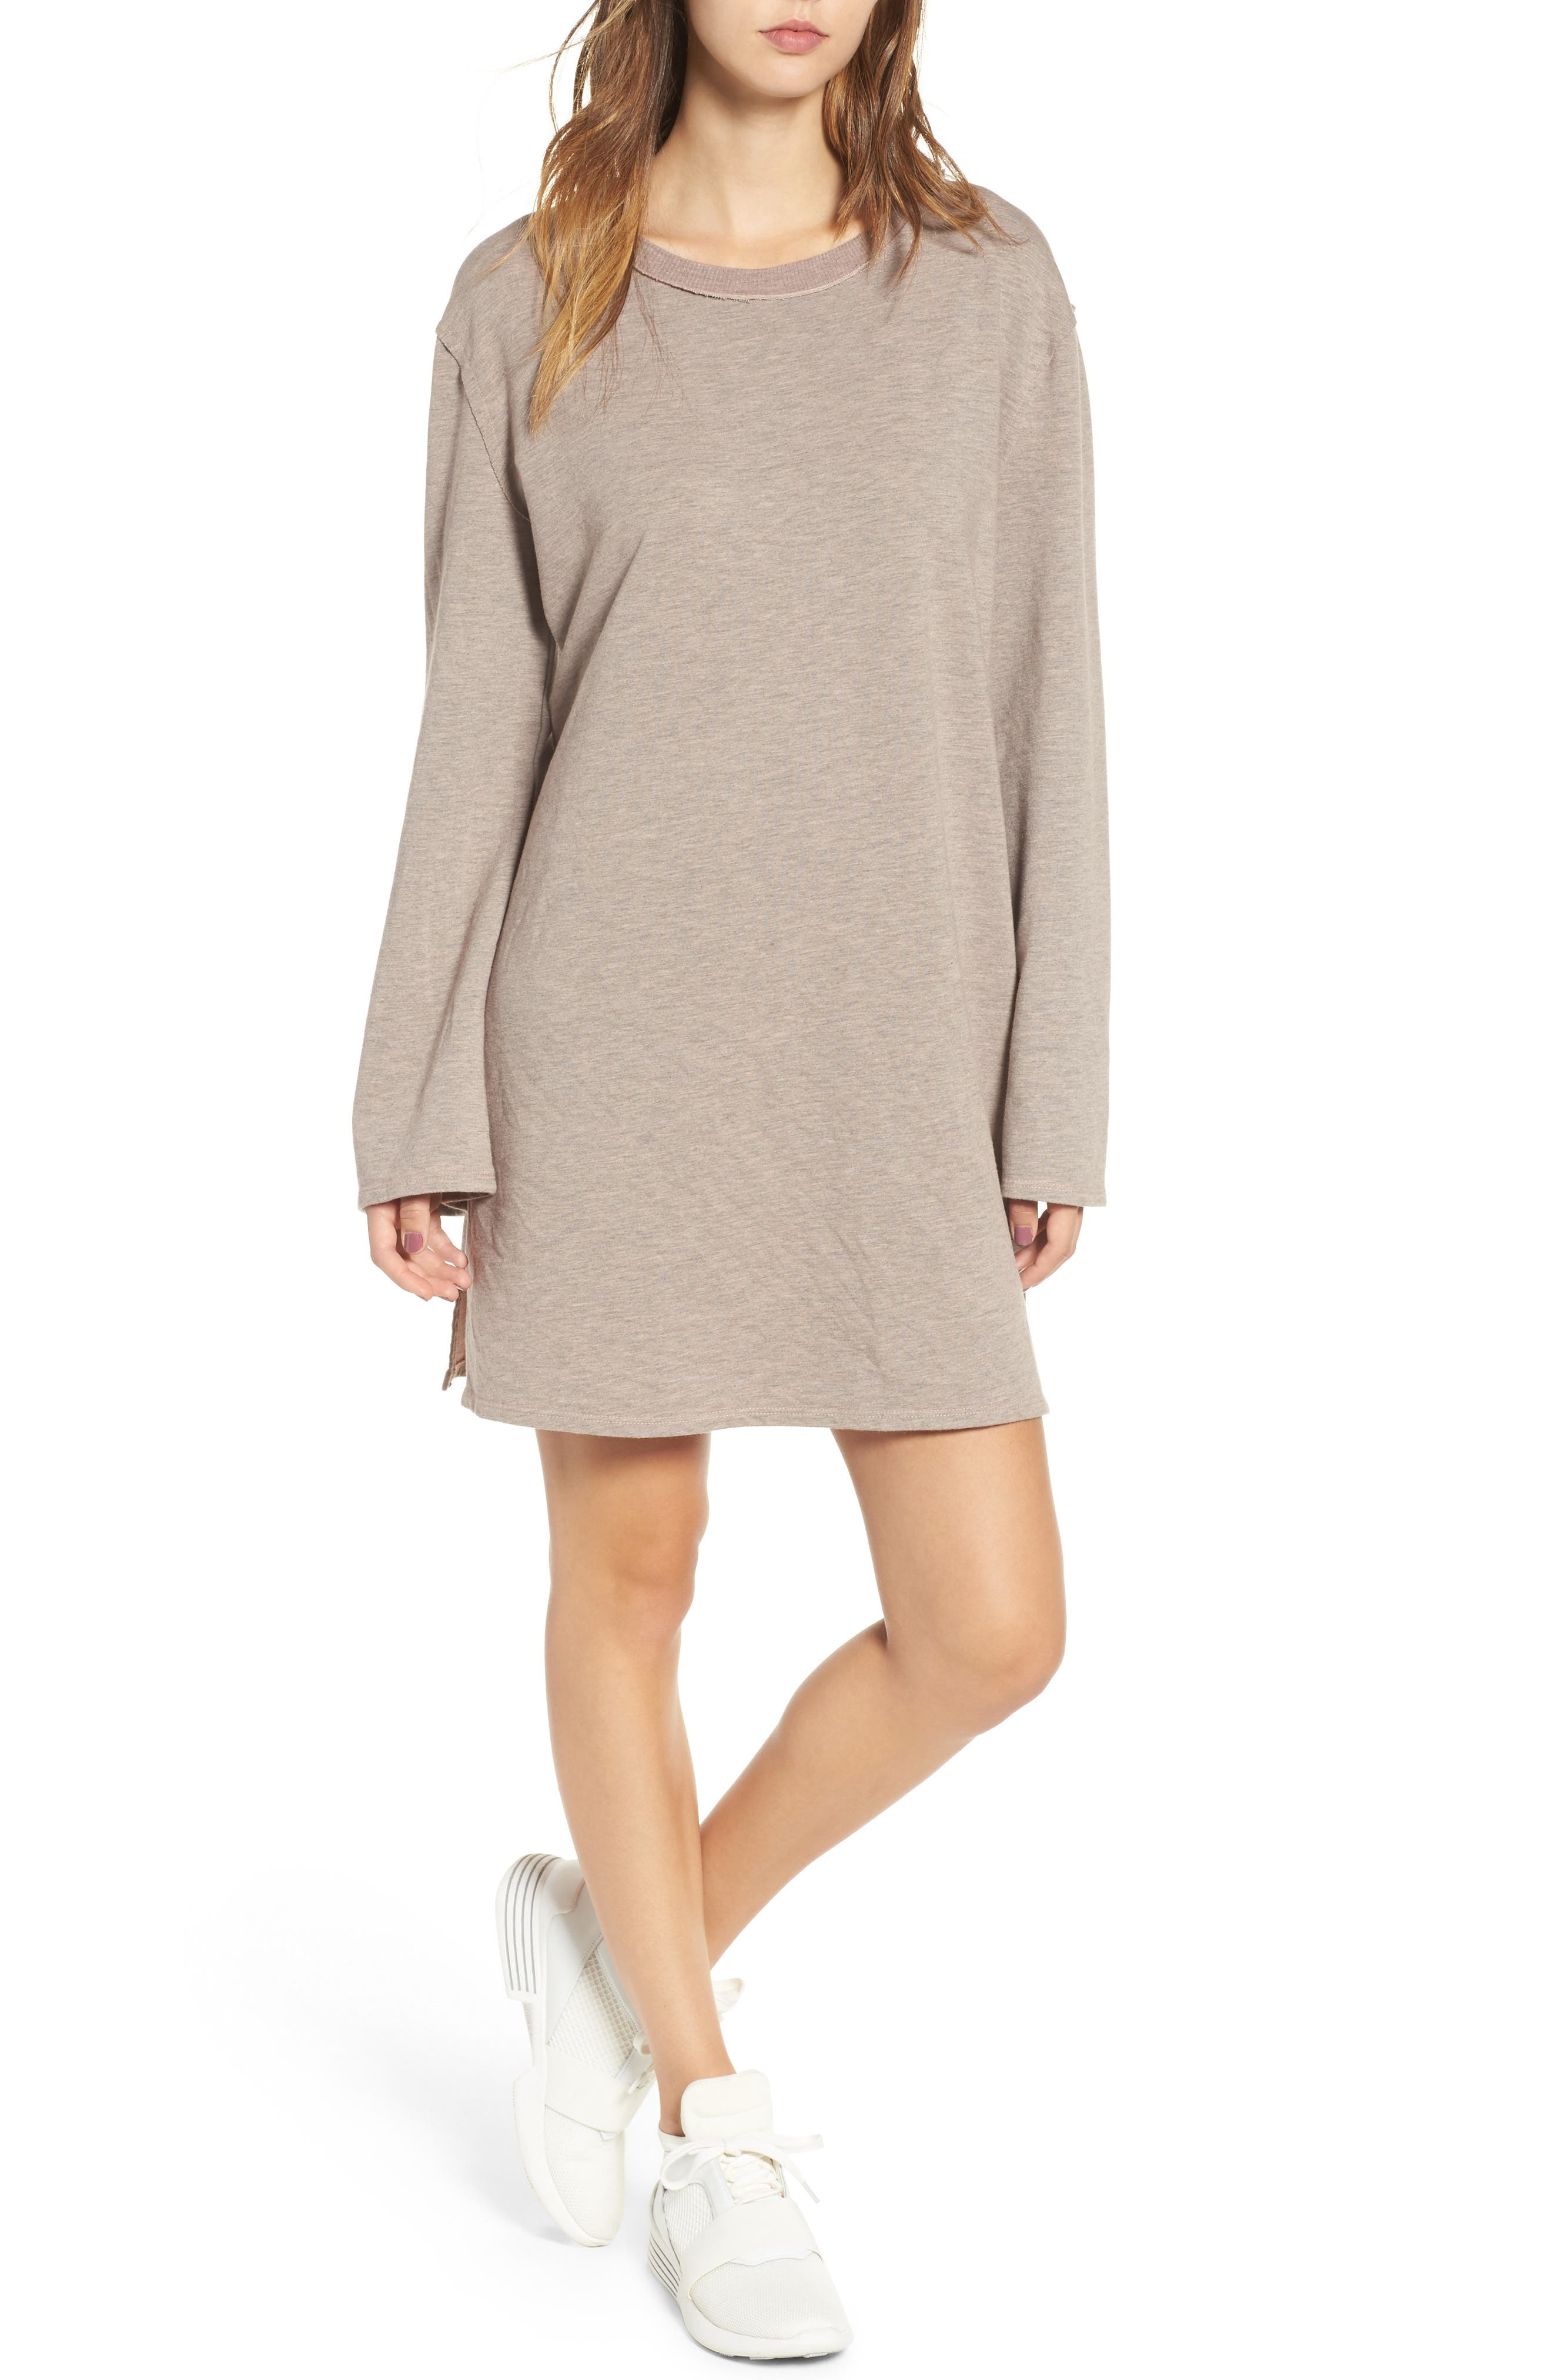 Alternate Image 1 Selected - PST by Project Social T Low Back Sweatshirt Dress